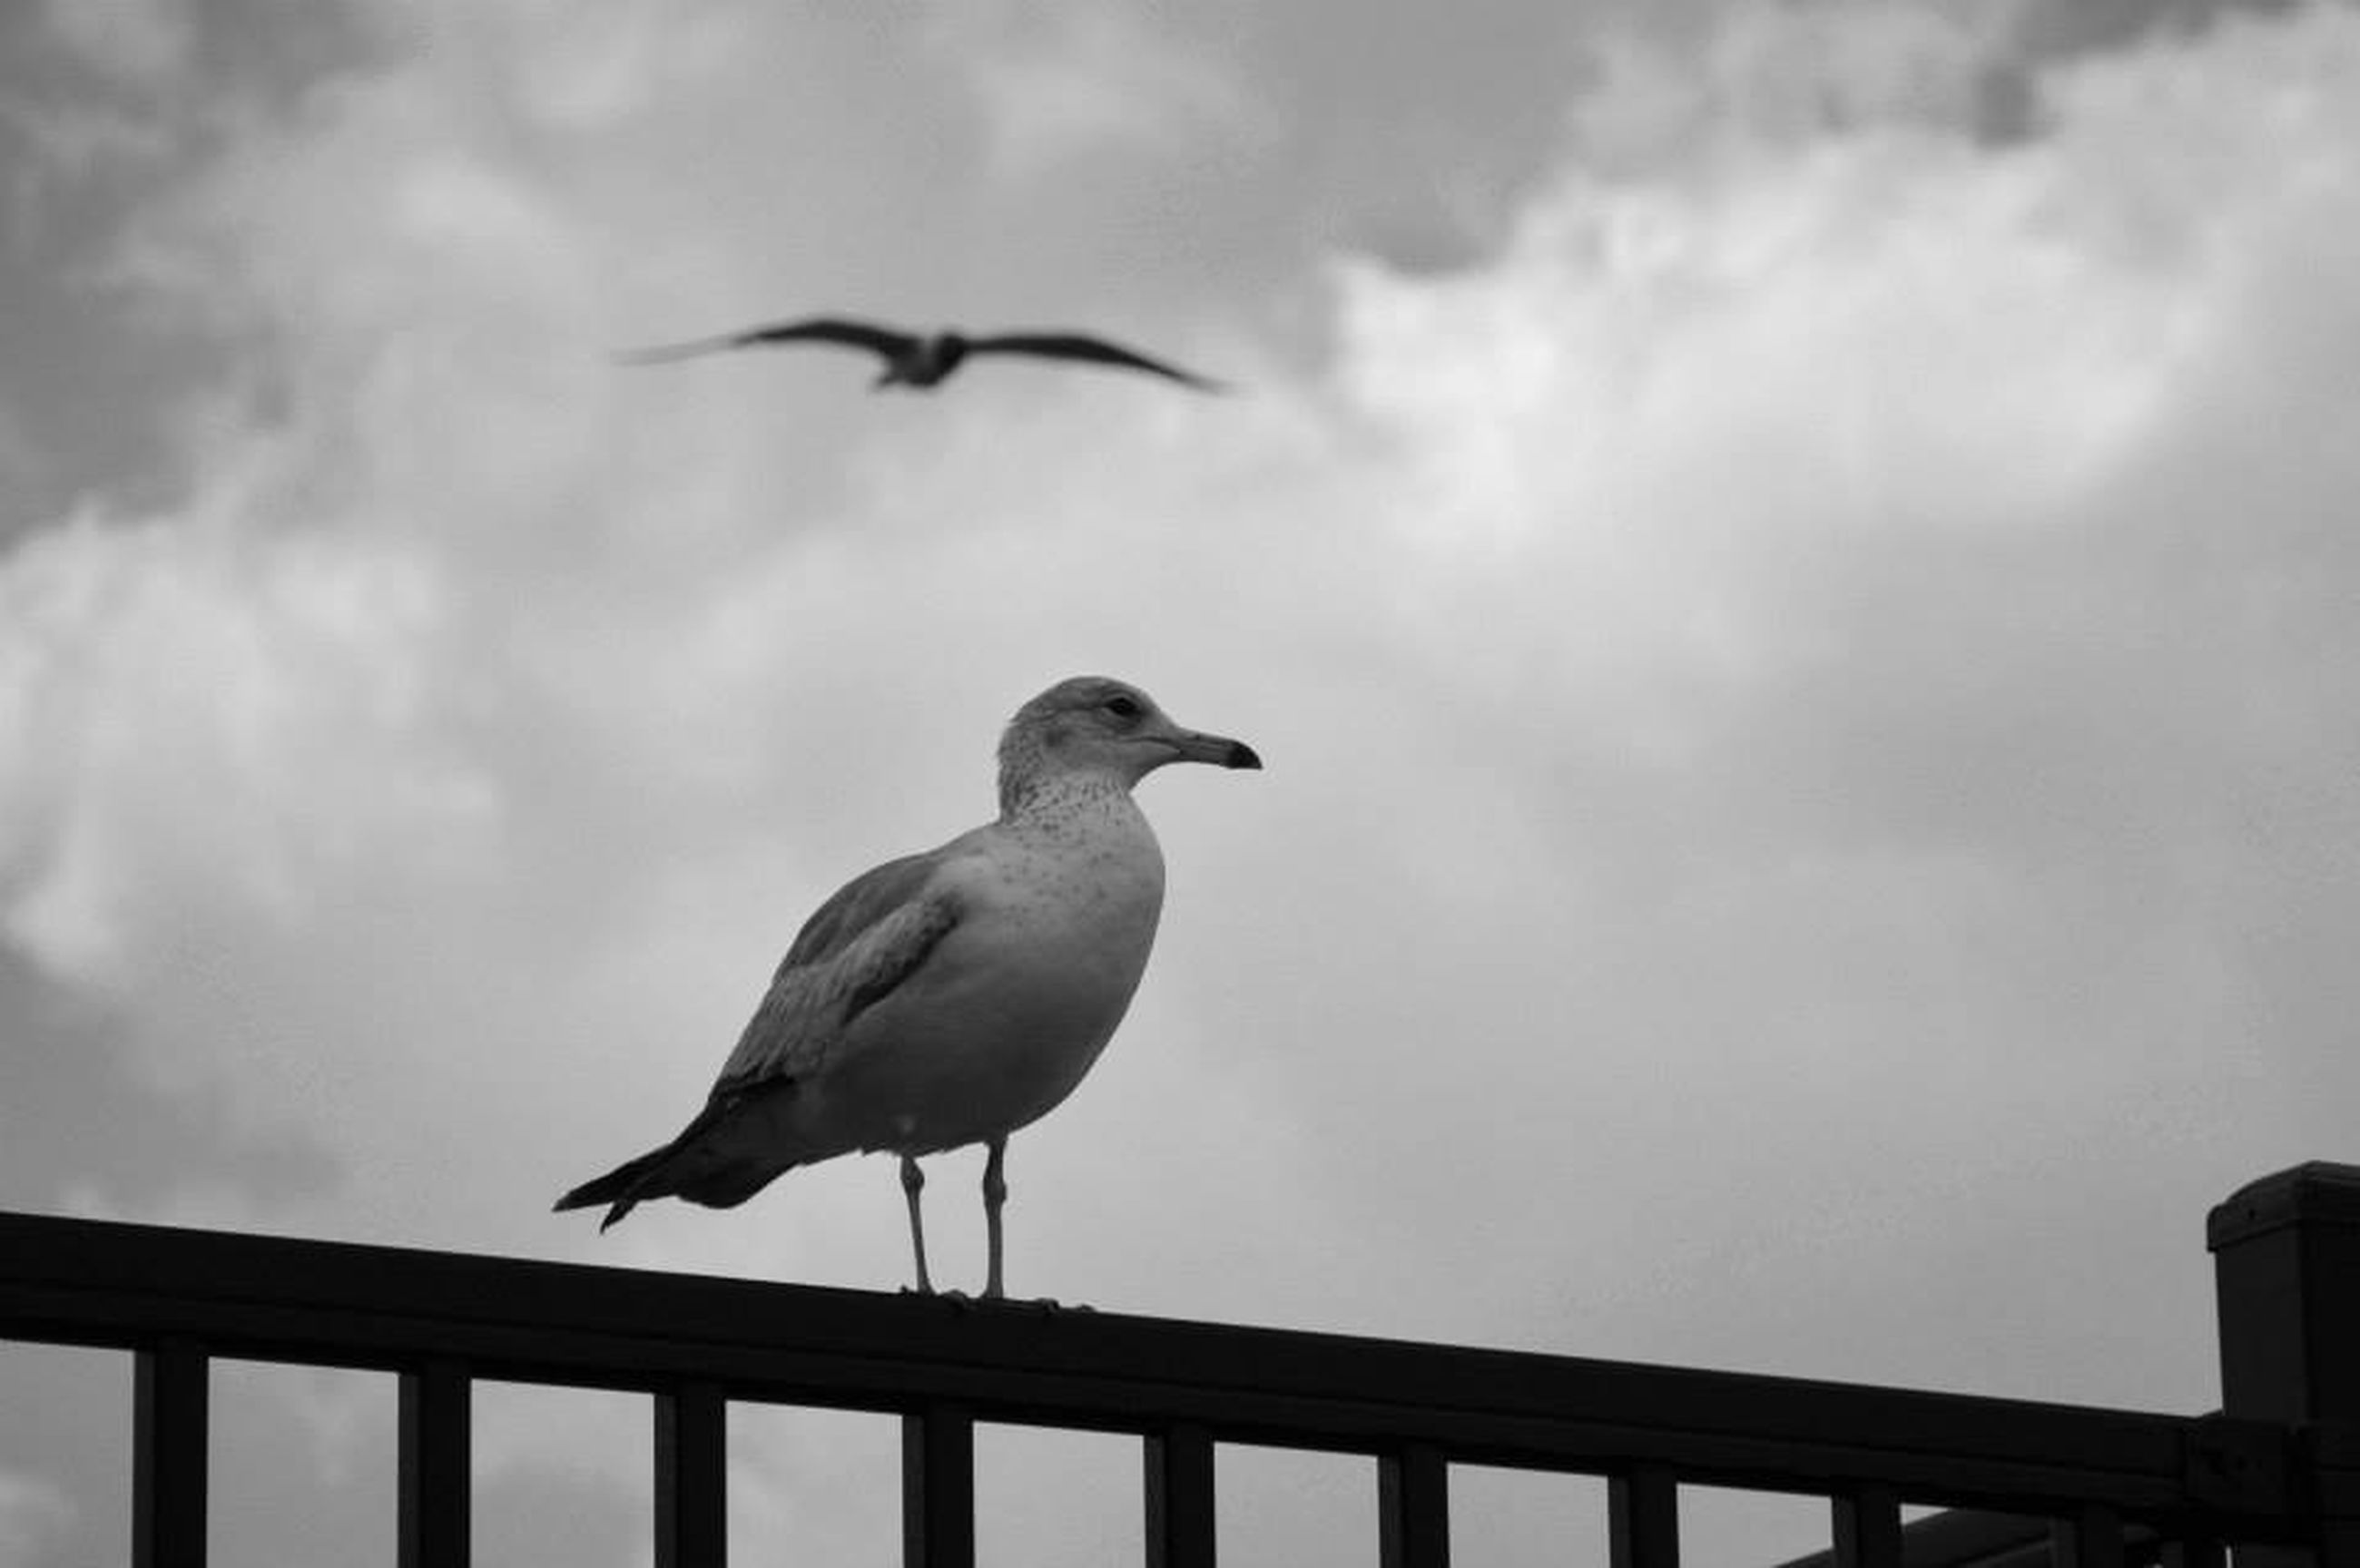 bird, animal themes, animals in the wild, wildlife, seagull, perching, sky, one animal, railing, spread wings, flying, full length, low angle view, cloud - sky, nature, outdoors, day, vertebrate, focus on foreground, zoology